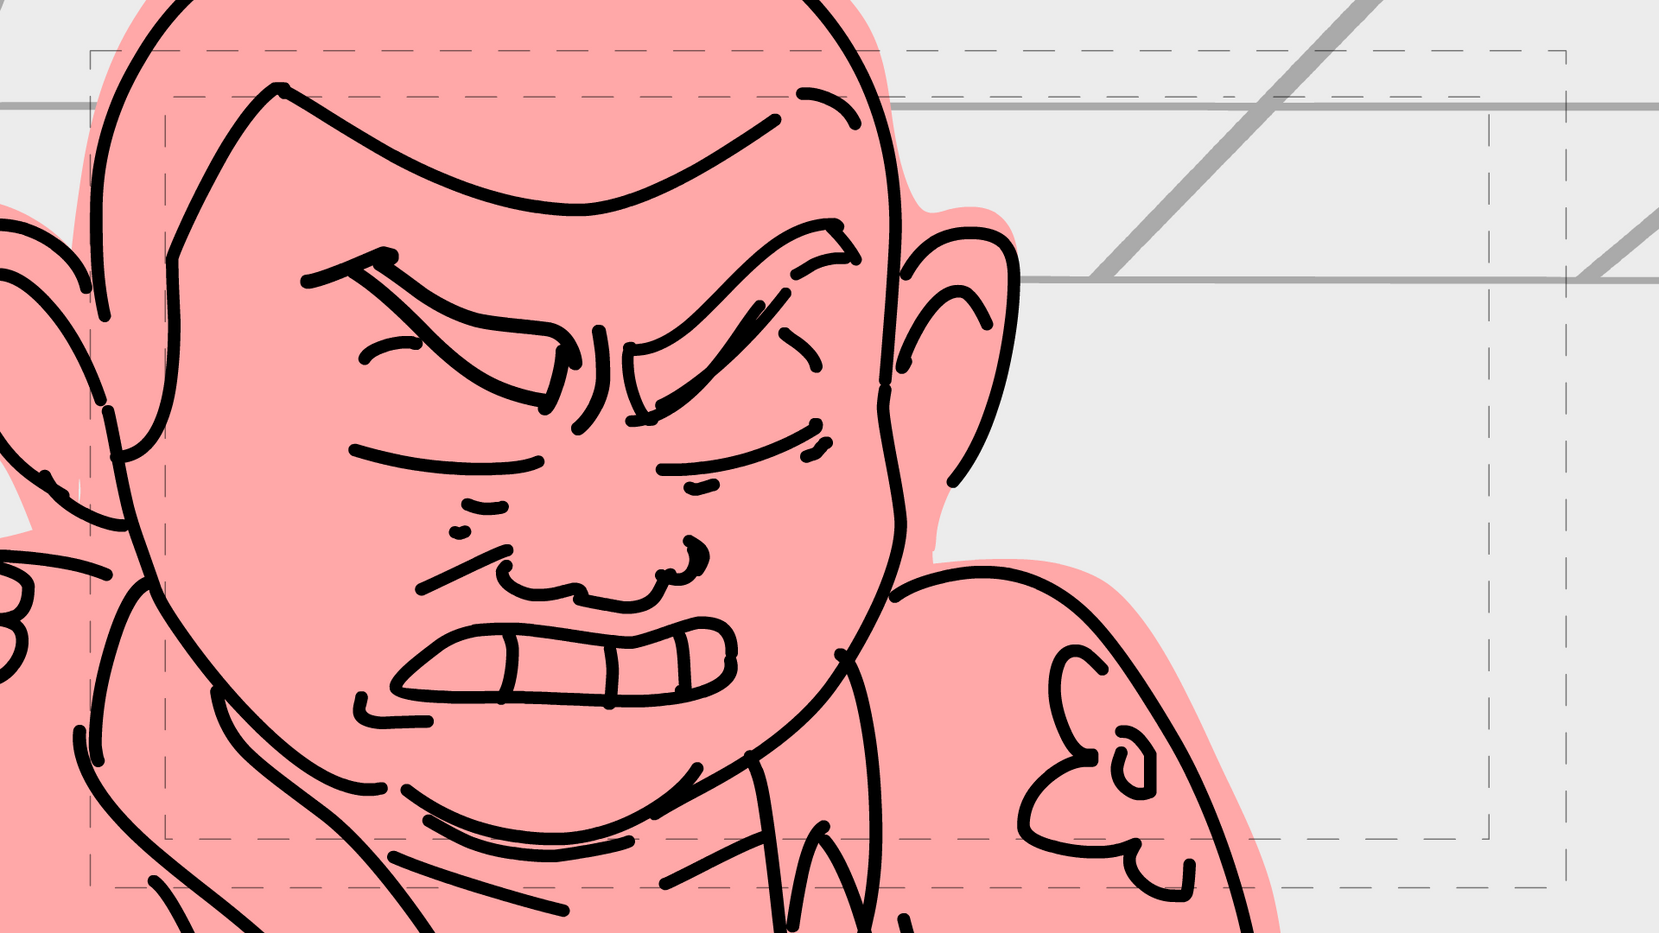 Storyboards_06_0225.png